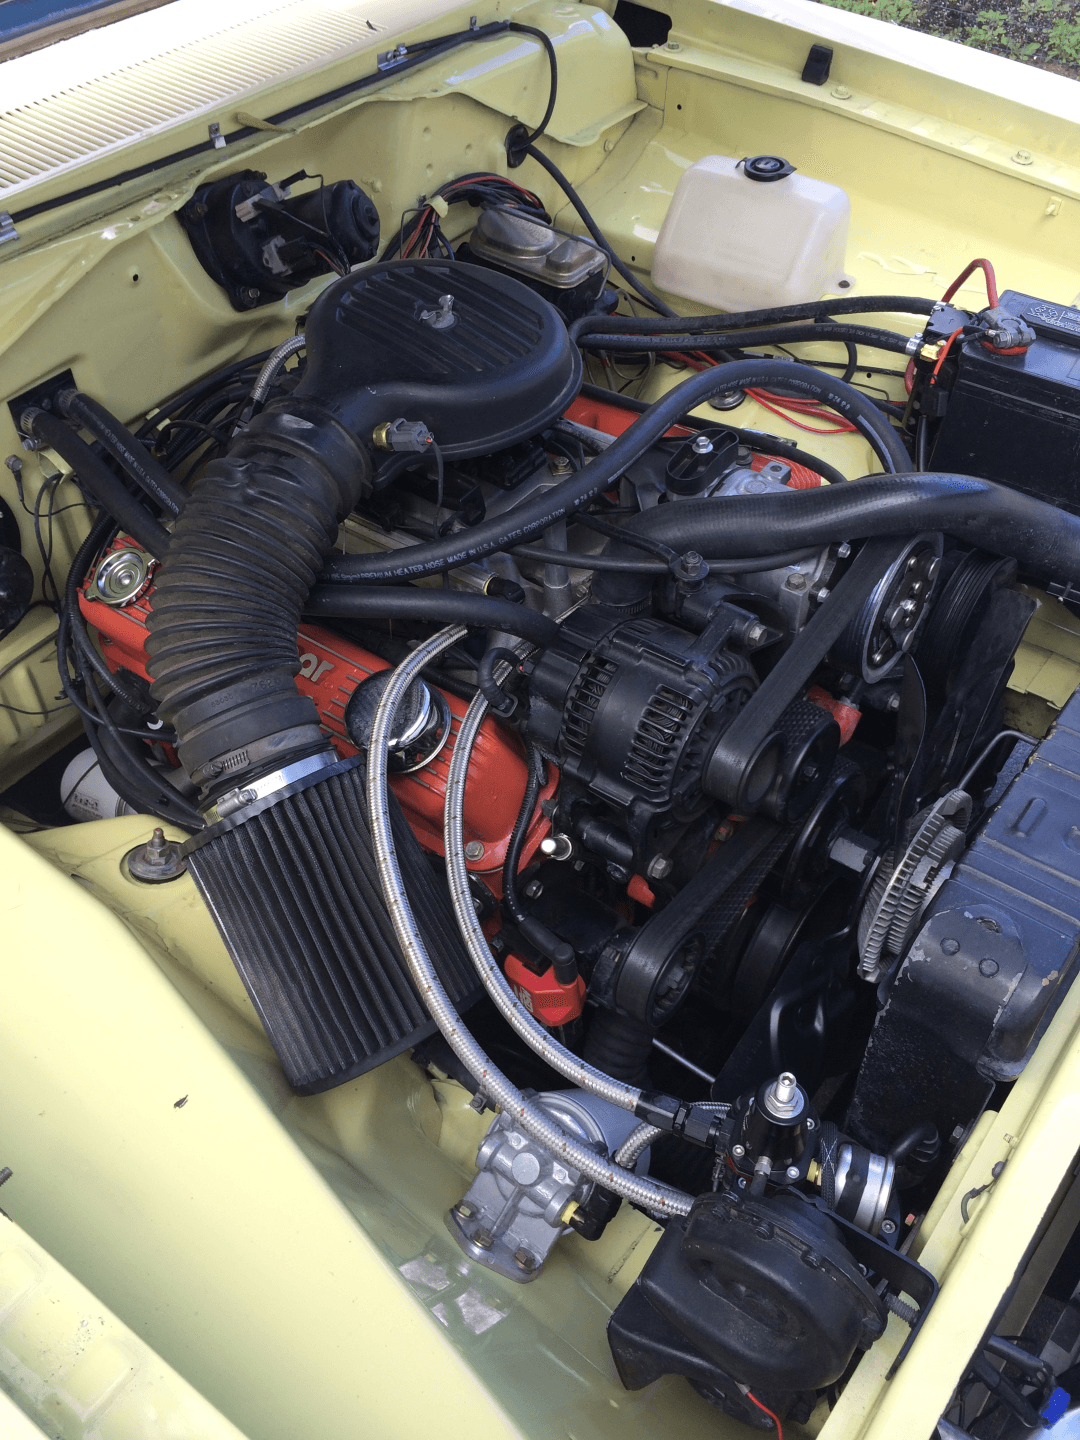 Stroker Engine Pros And Cons